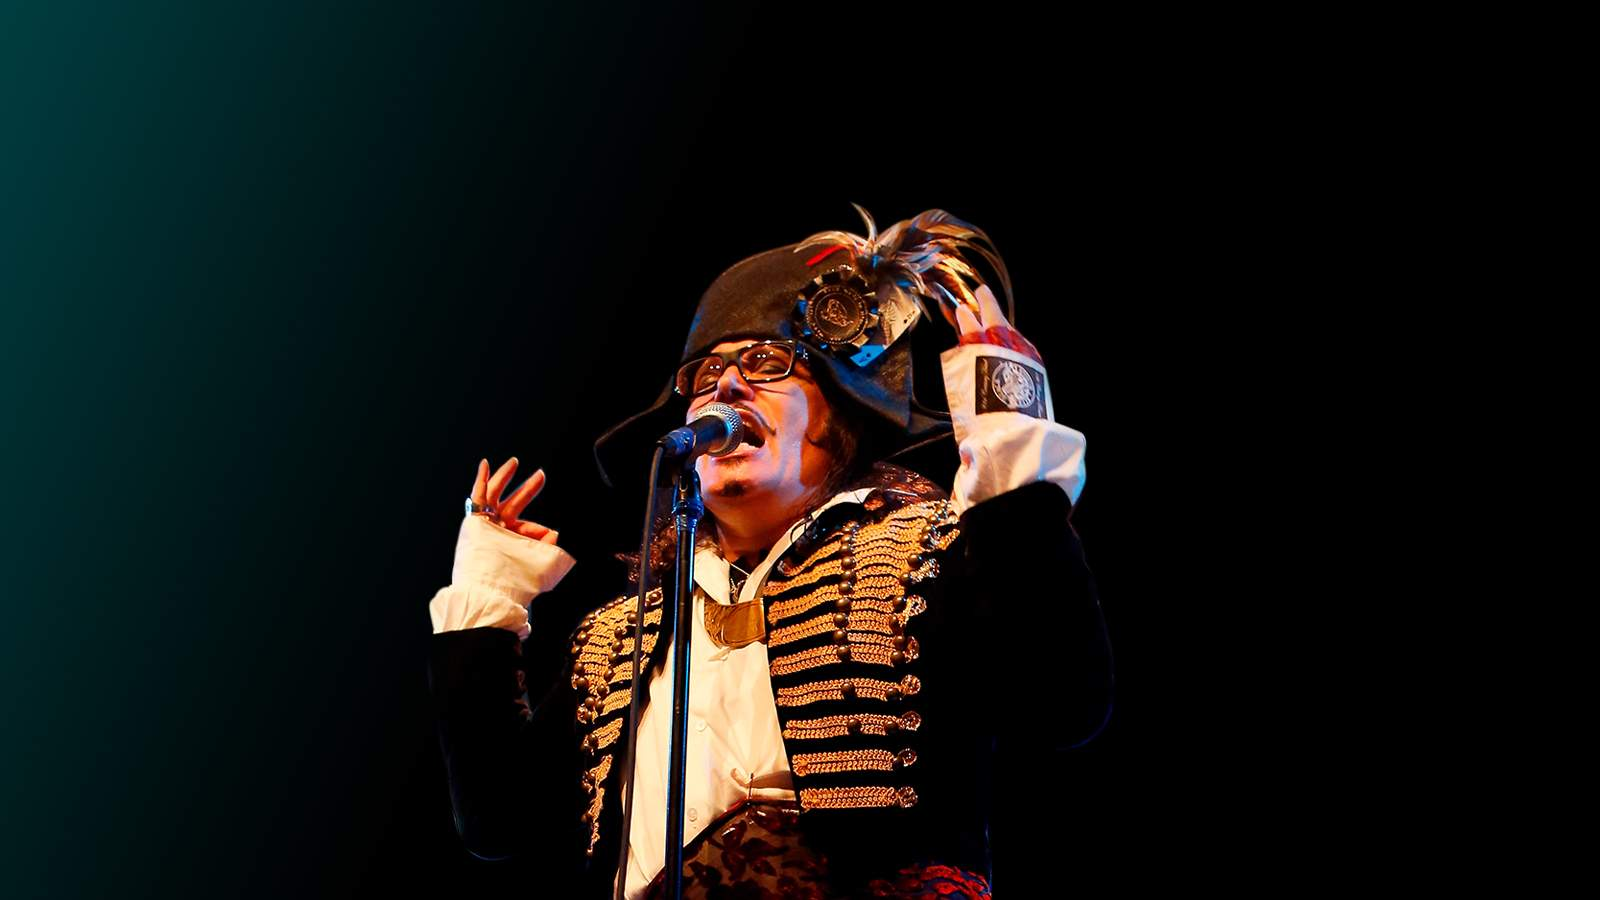 Adam Ant (Rescheduled from 4/28/2020, 9/16/2020)